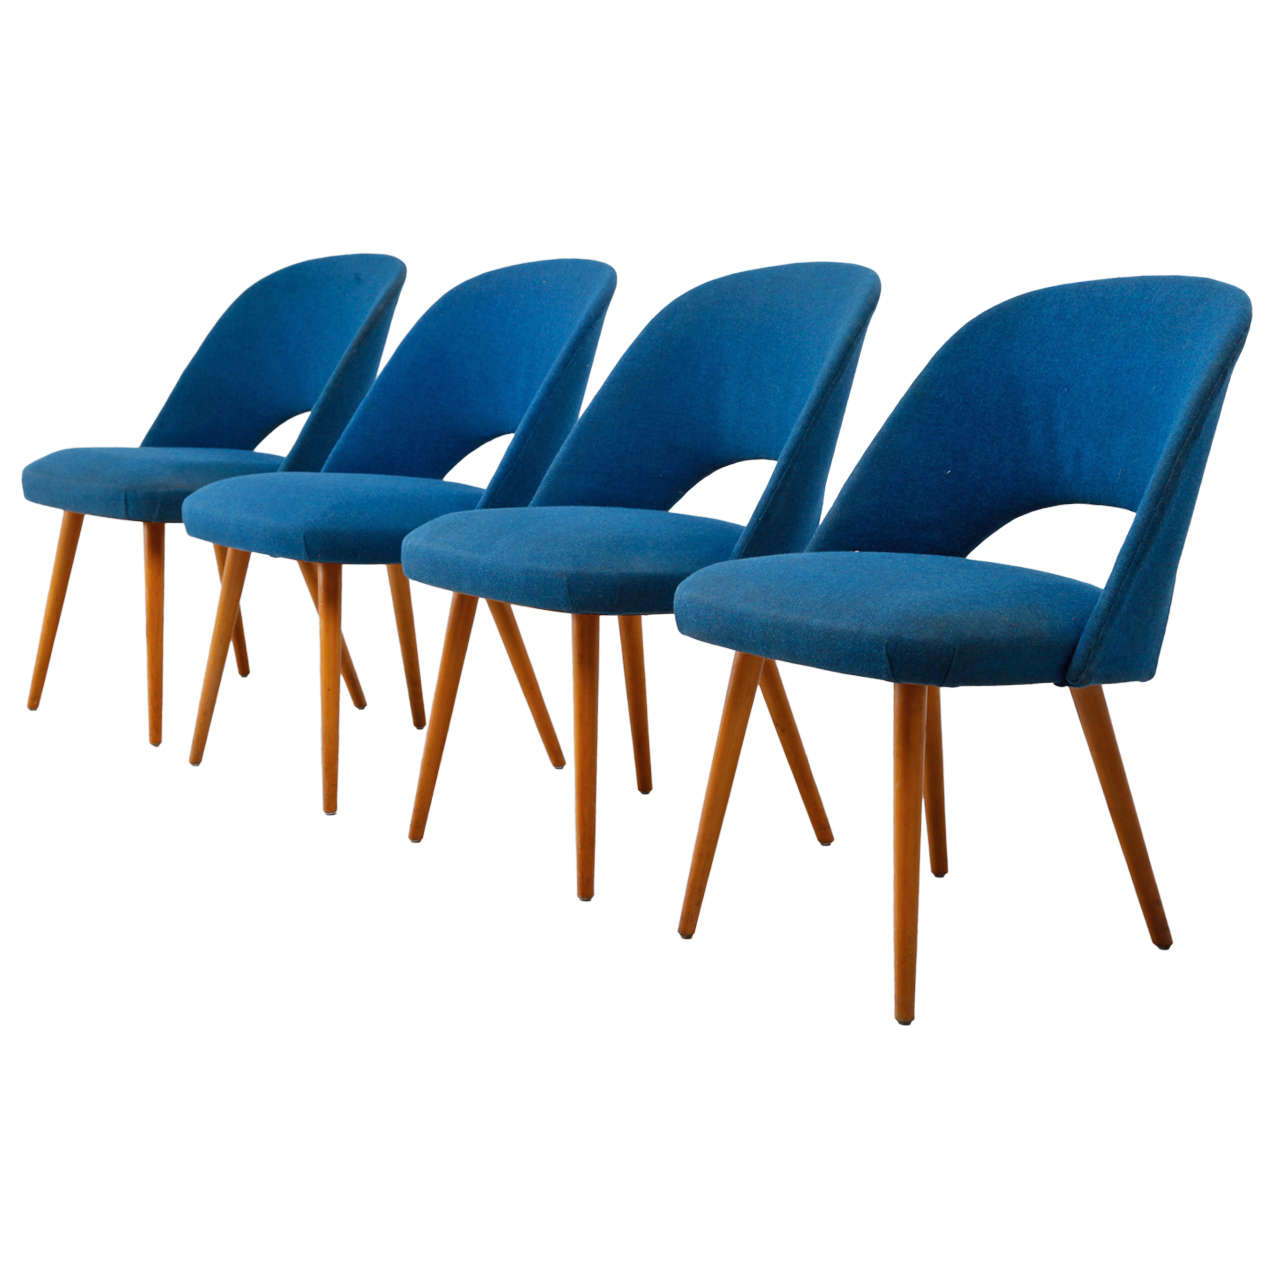 a set of four mid century modern chairs made by thonet at 1stdibs